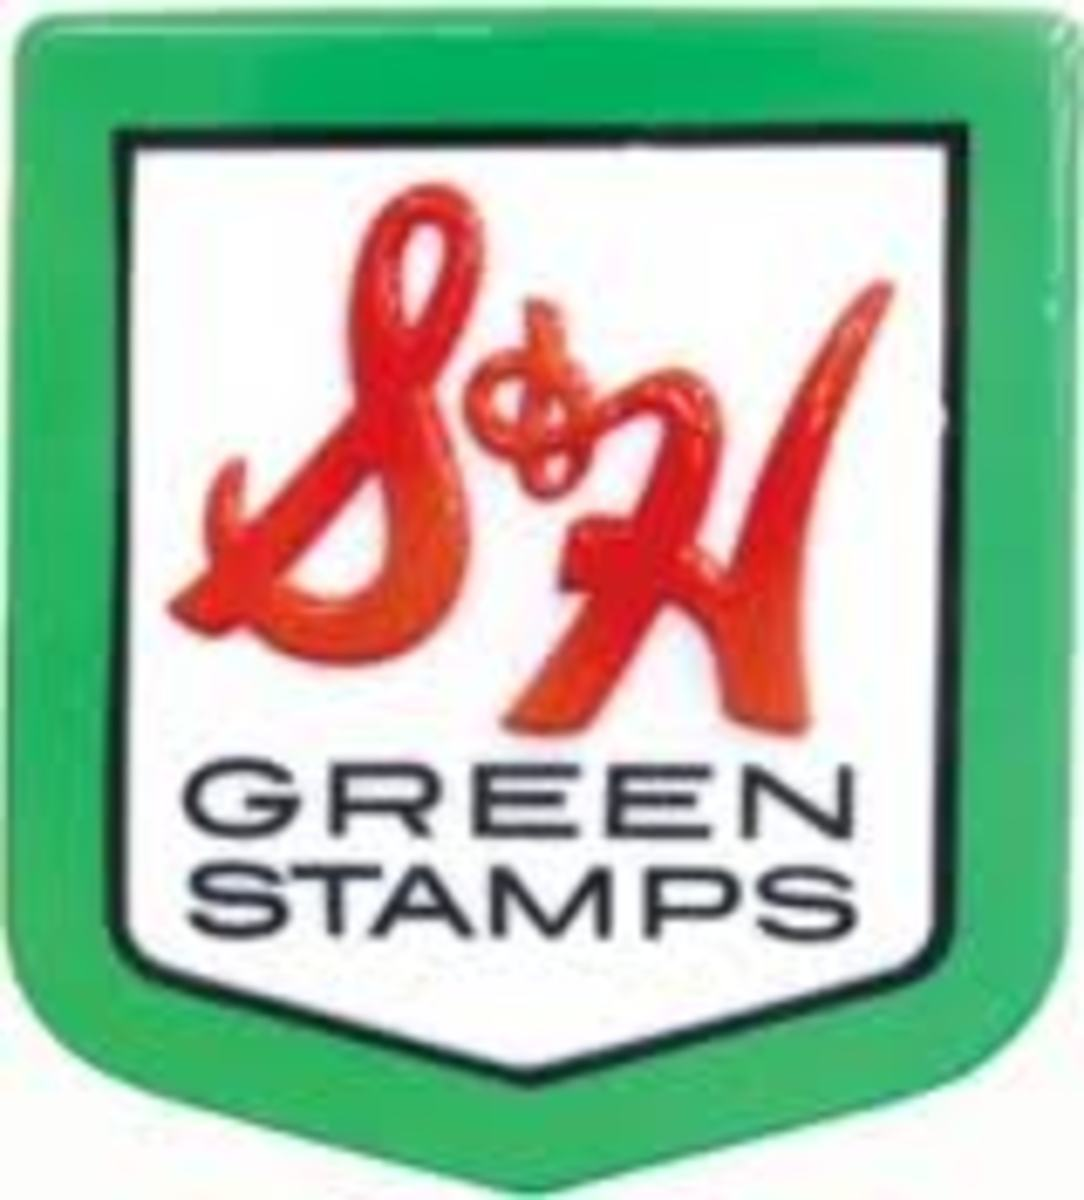 Back when Stamps were Green....I Don't Mean Eco-Friendly! Collecting S&H Green Stamps